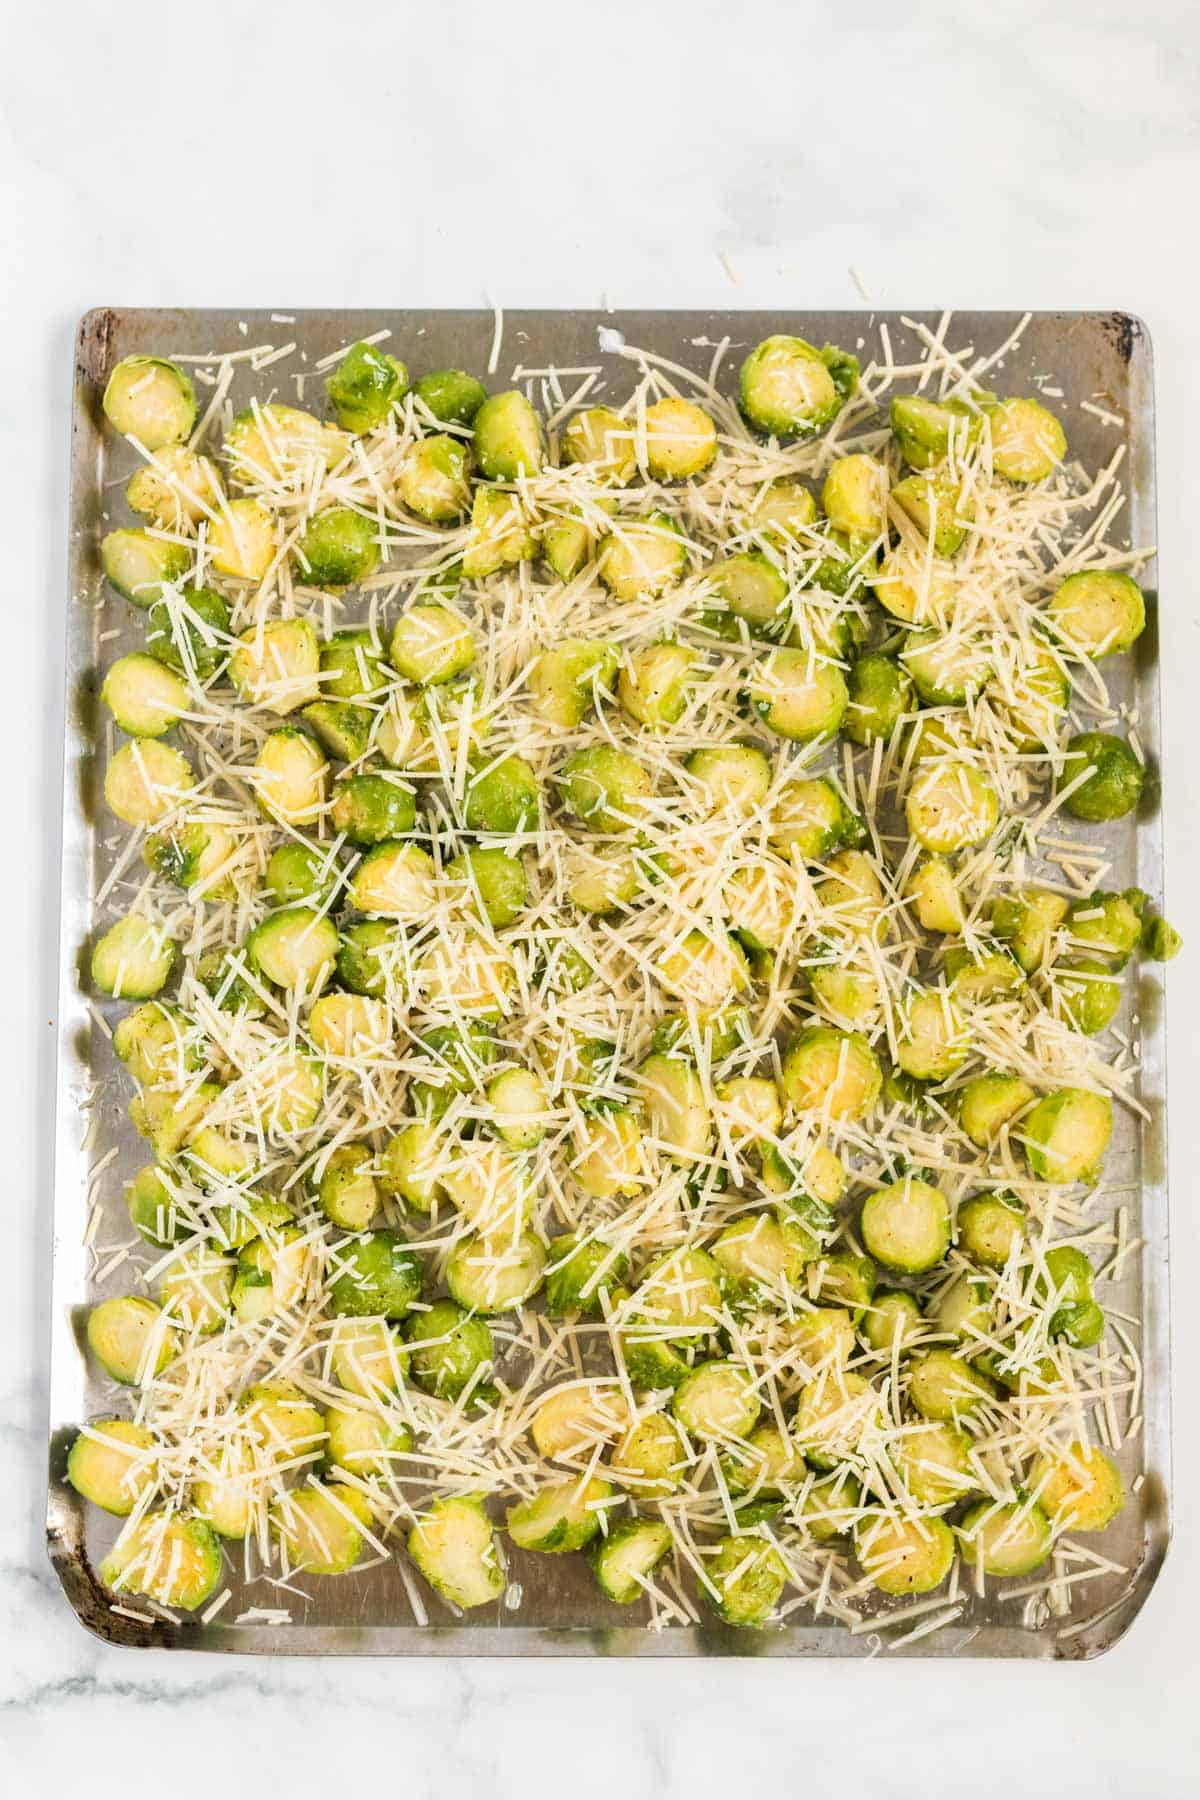 brussels sprouts cut in half and topped with parmesan cheese